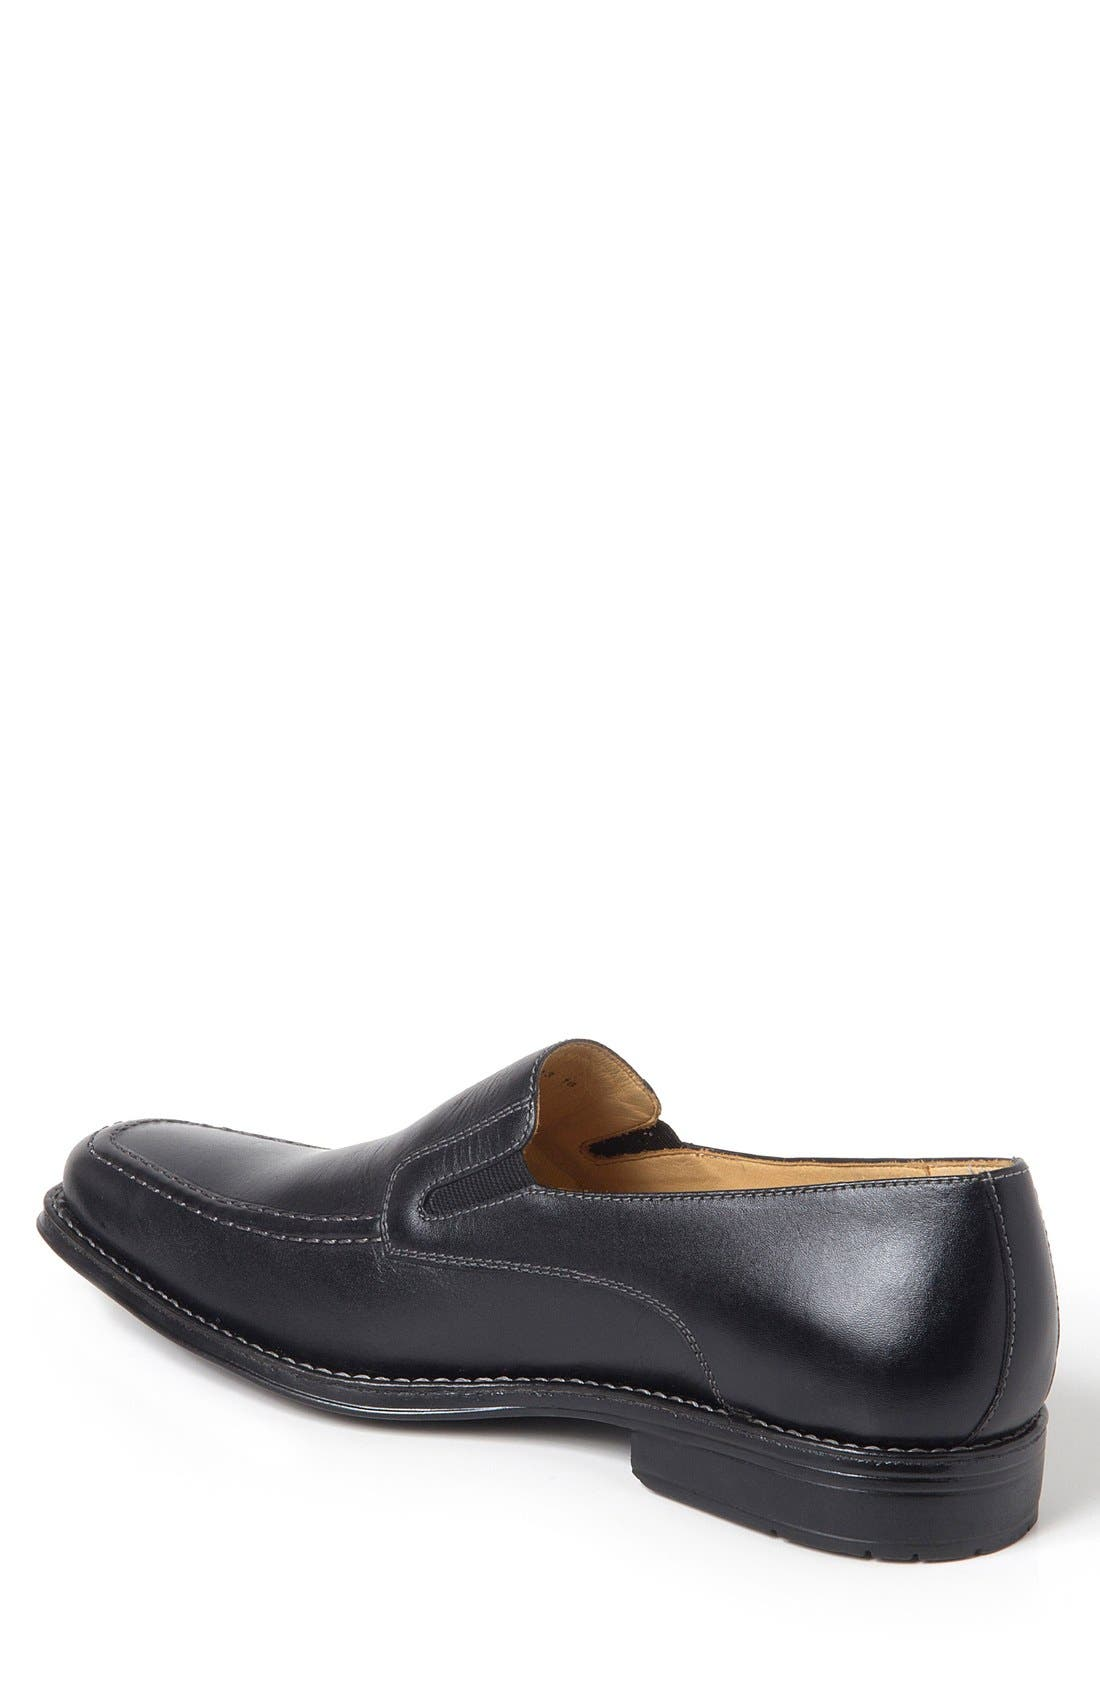 Marc Venetian Loafer,                             Alternate thumbnail 3, color,                             001